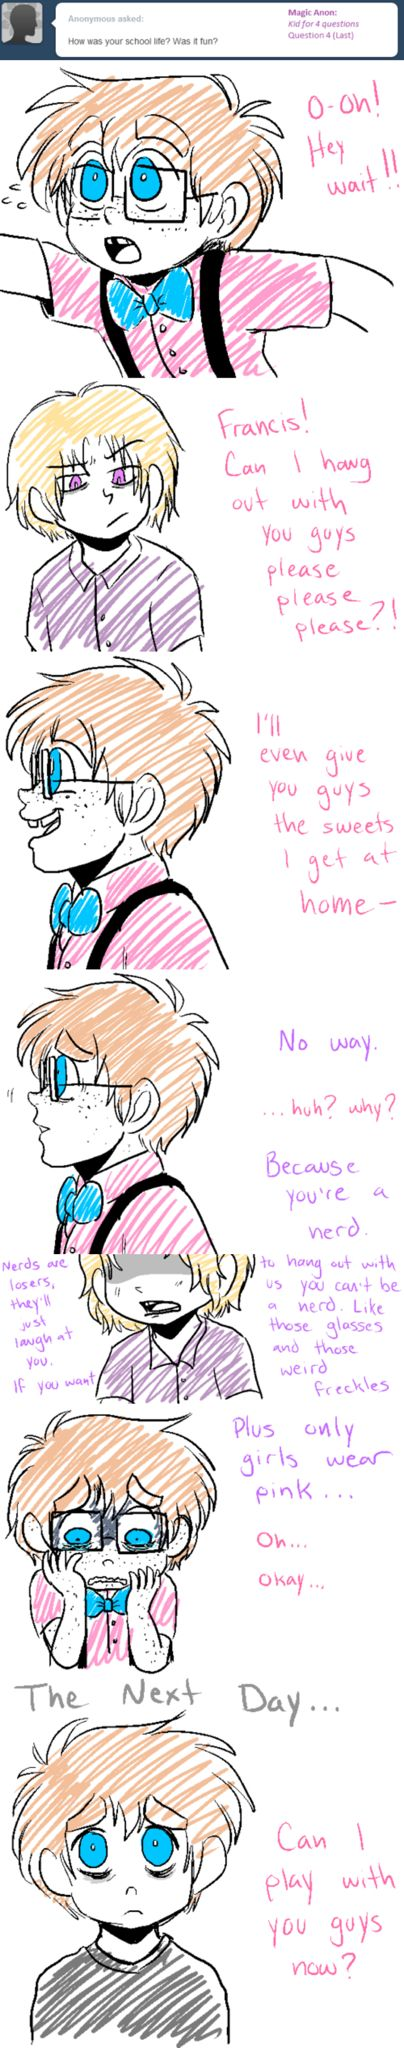 Shhh.. Did you hear that? That was the sound of my heart breaking for 2p!England... The hetalia fandom either makes me either extremily sad or happy-- there is no inbetween!! #hetalia {http://ask-2p-england.tumblr.com}